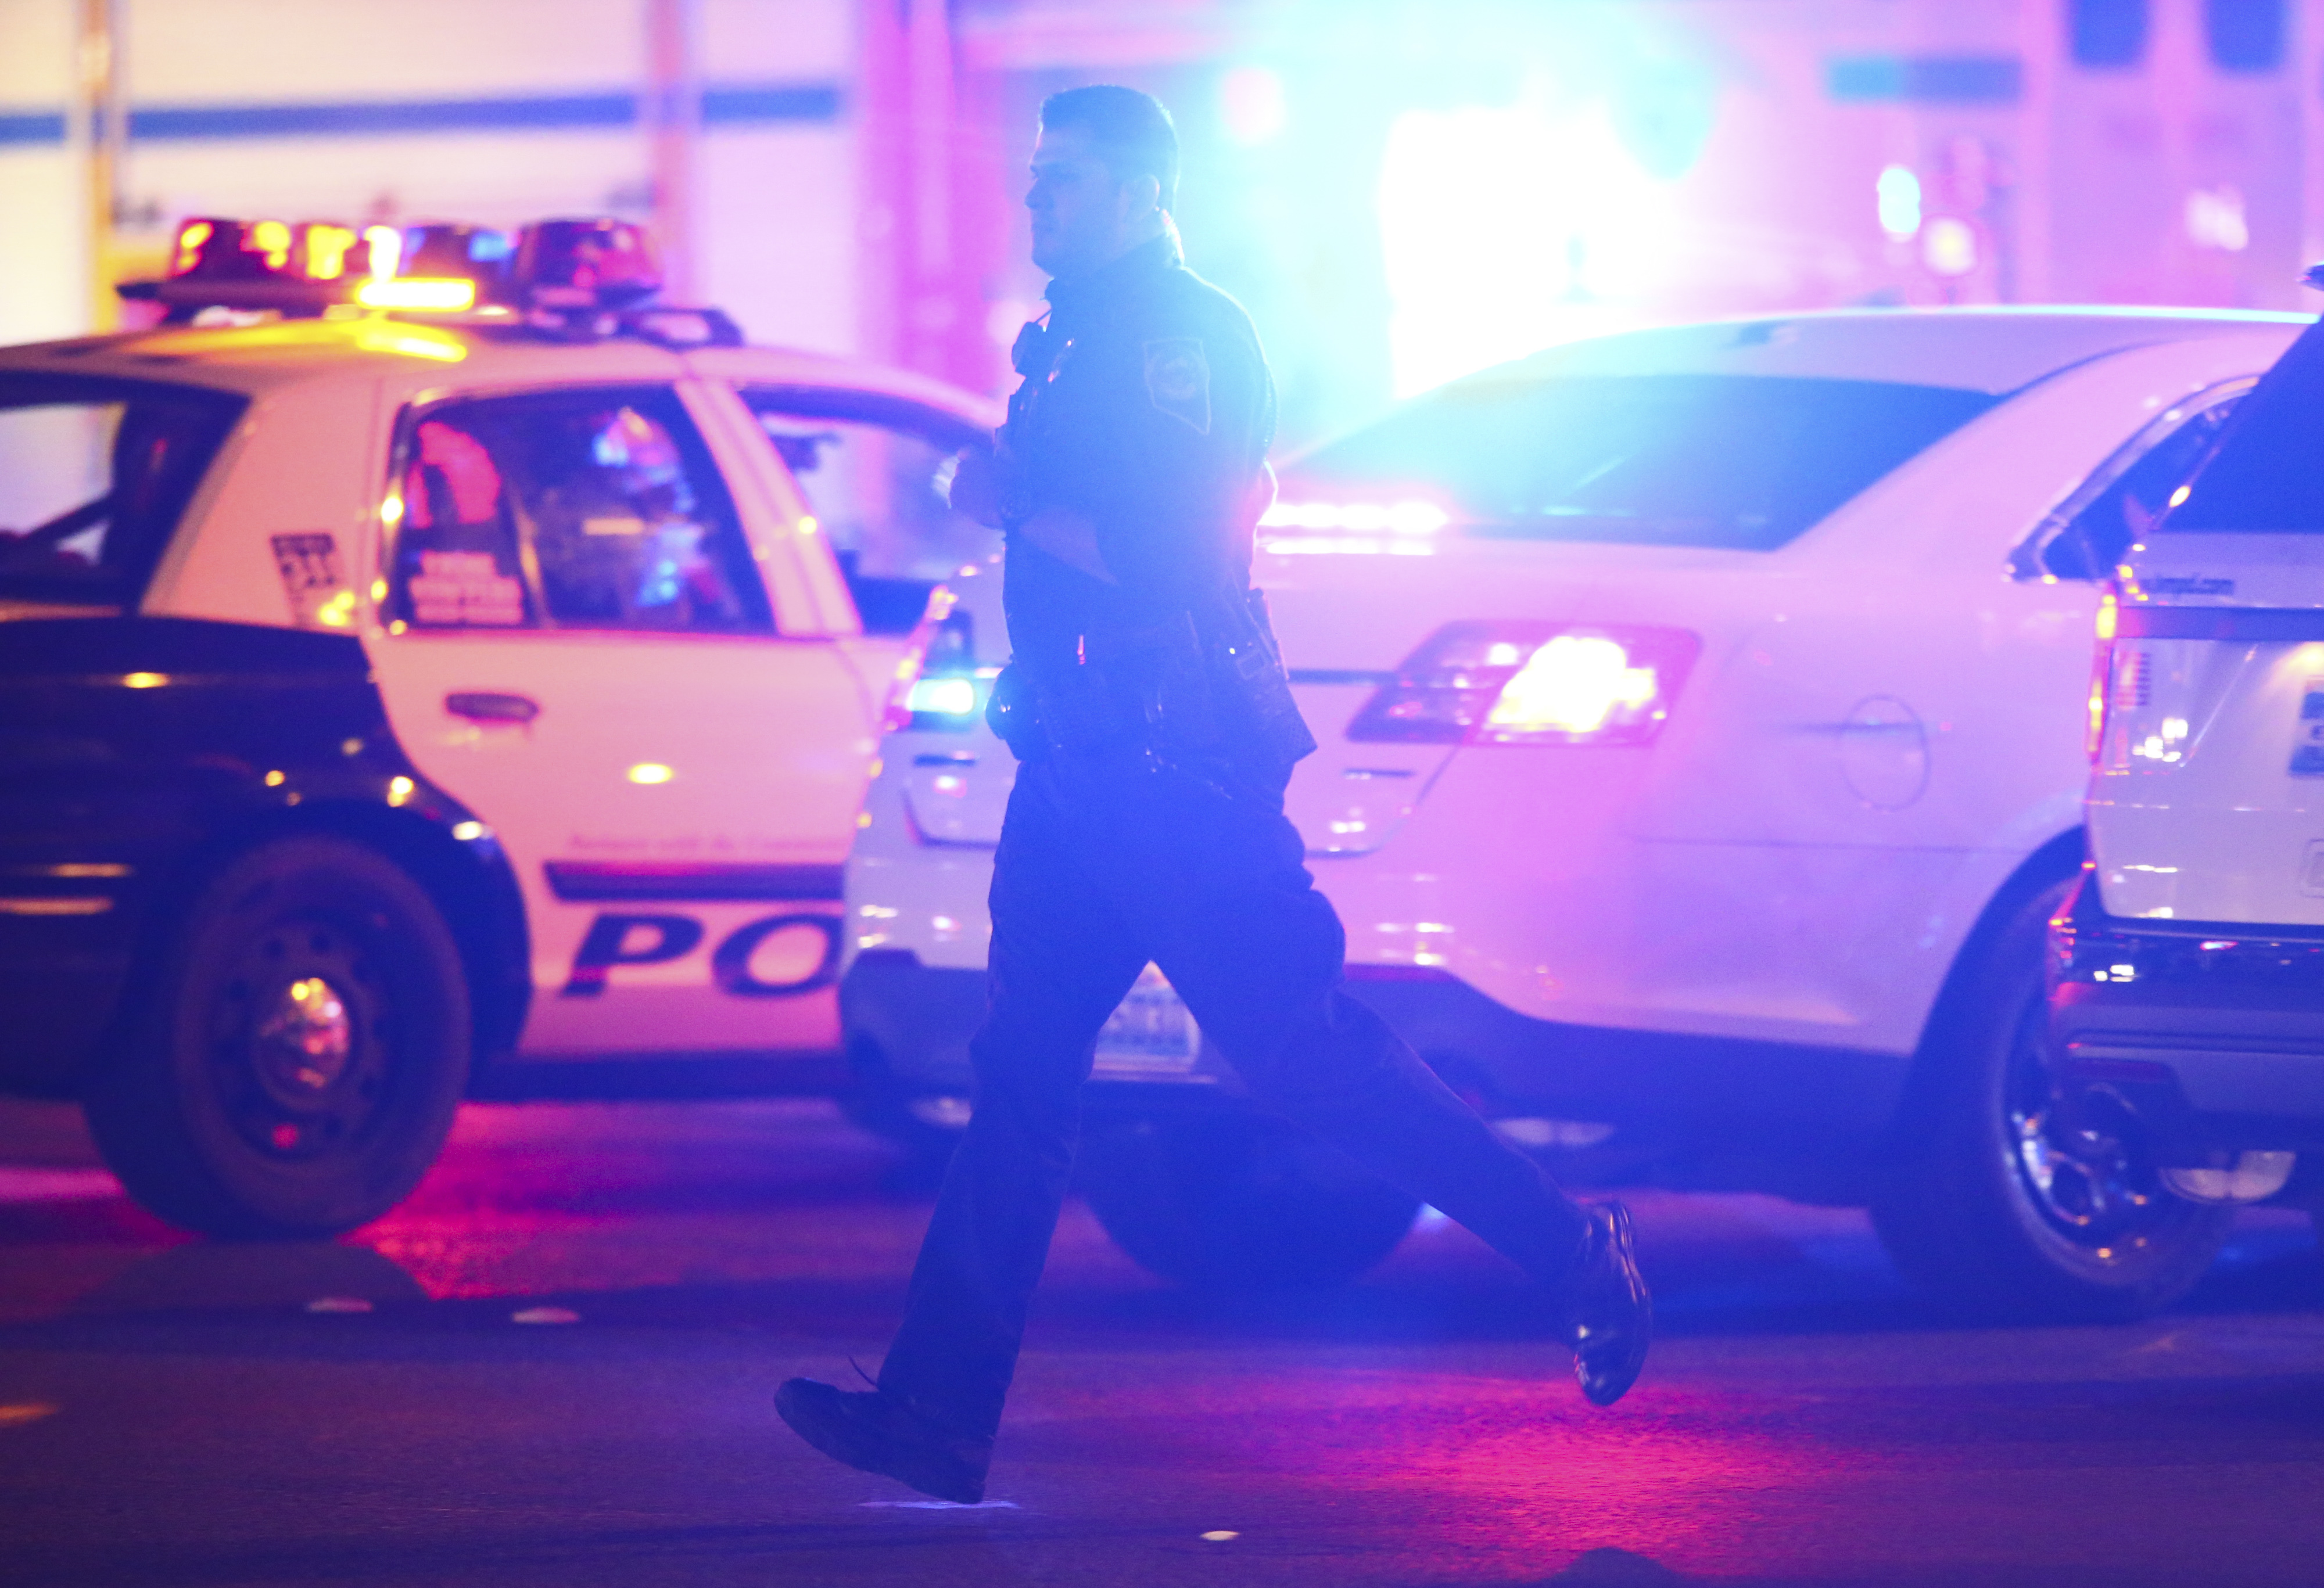 Las Vegas police respond during an active shooter situation on the Las Vegas Strip near Tropicana Avenue in Las Vegas Sunday, Oct. 1, 2017. Multiple victims were being transported to hospitals after a shooting late Sunday at a music festival on the Las Vegas Strip.  (Chase Stevens/Las Vegas Review-Journal via AP)